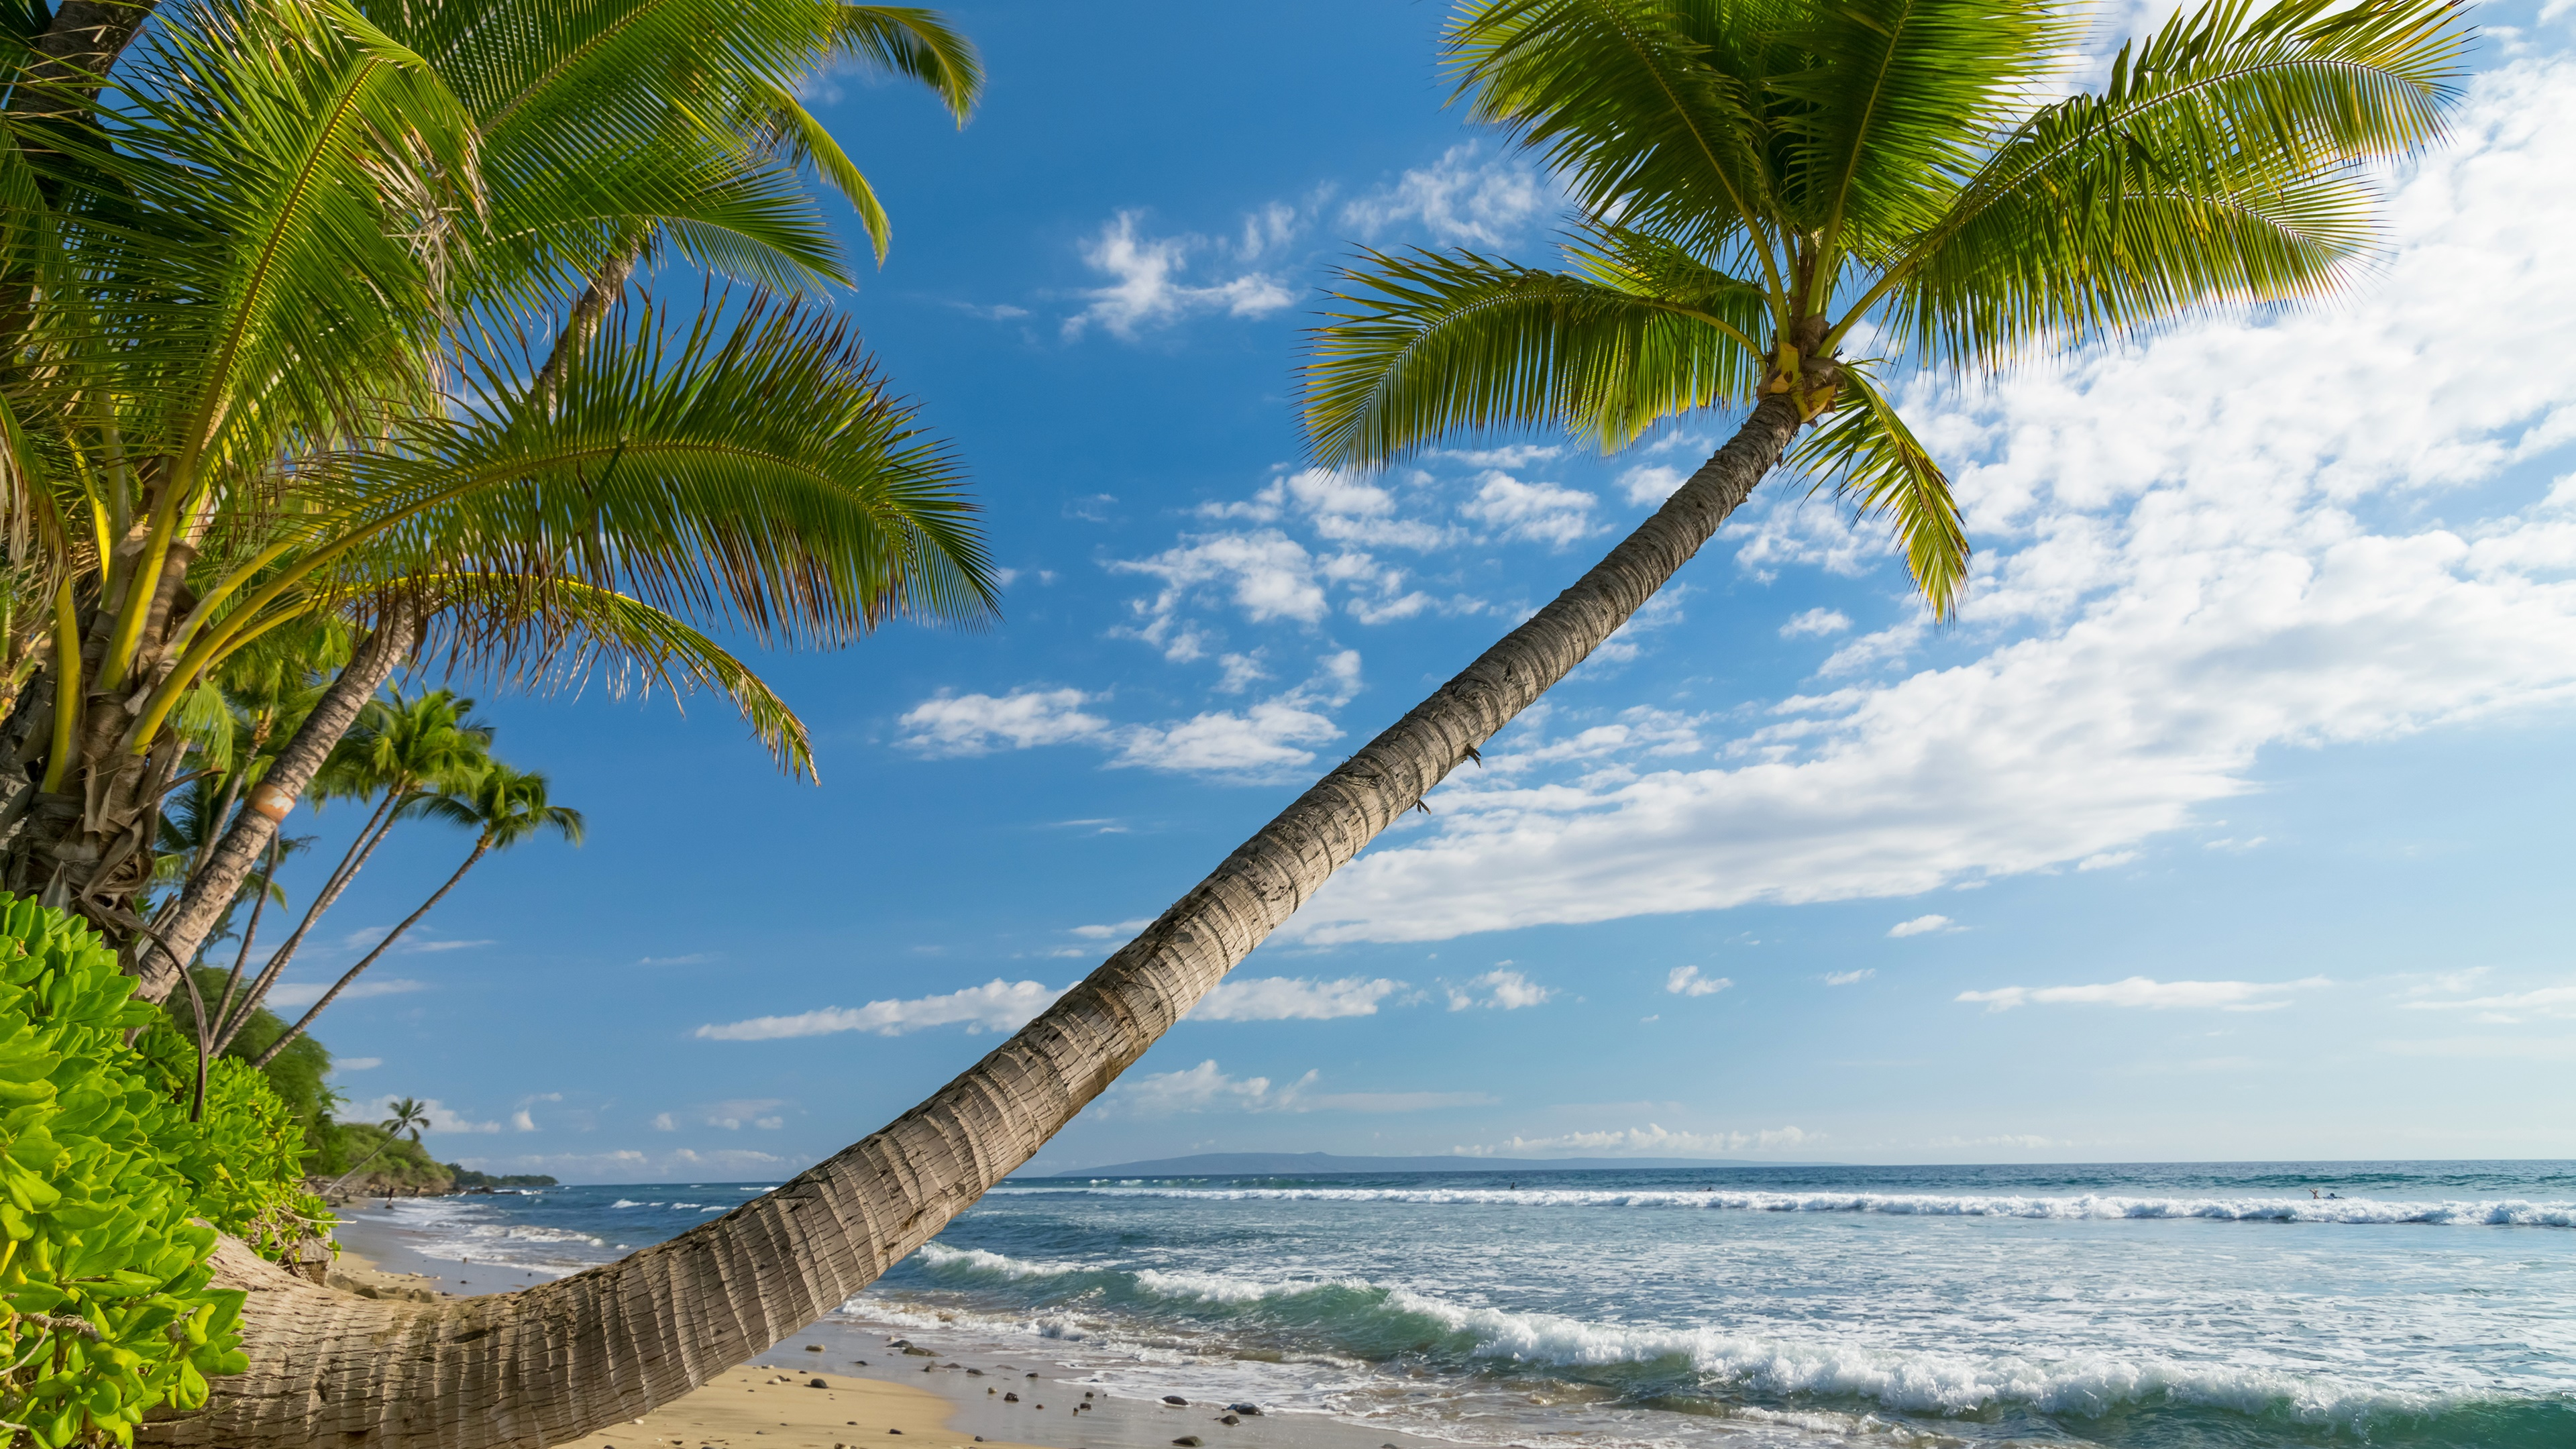 White sandy beach with palms wallpaper